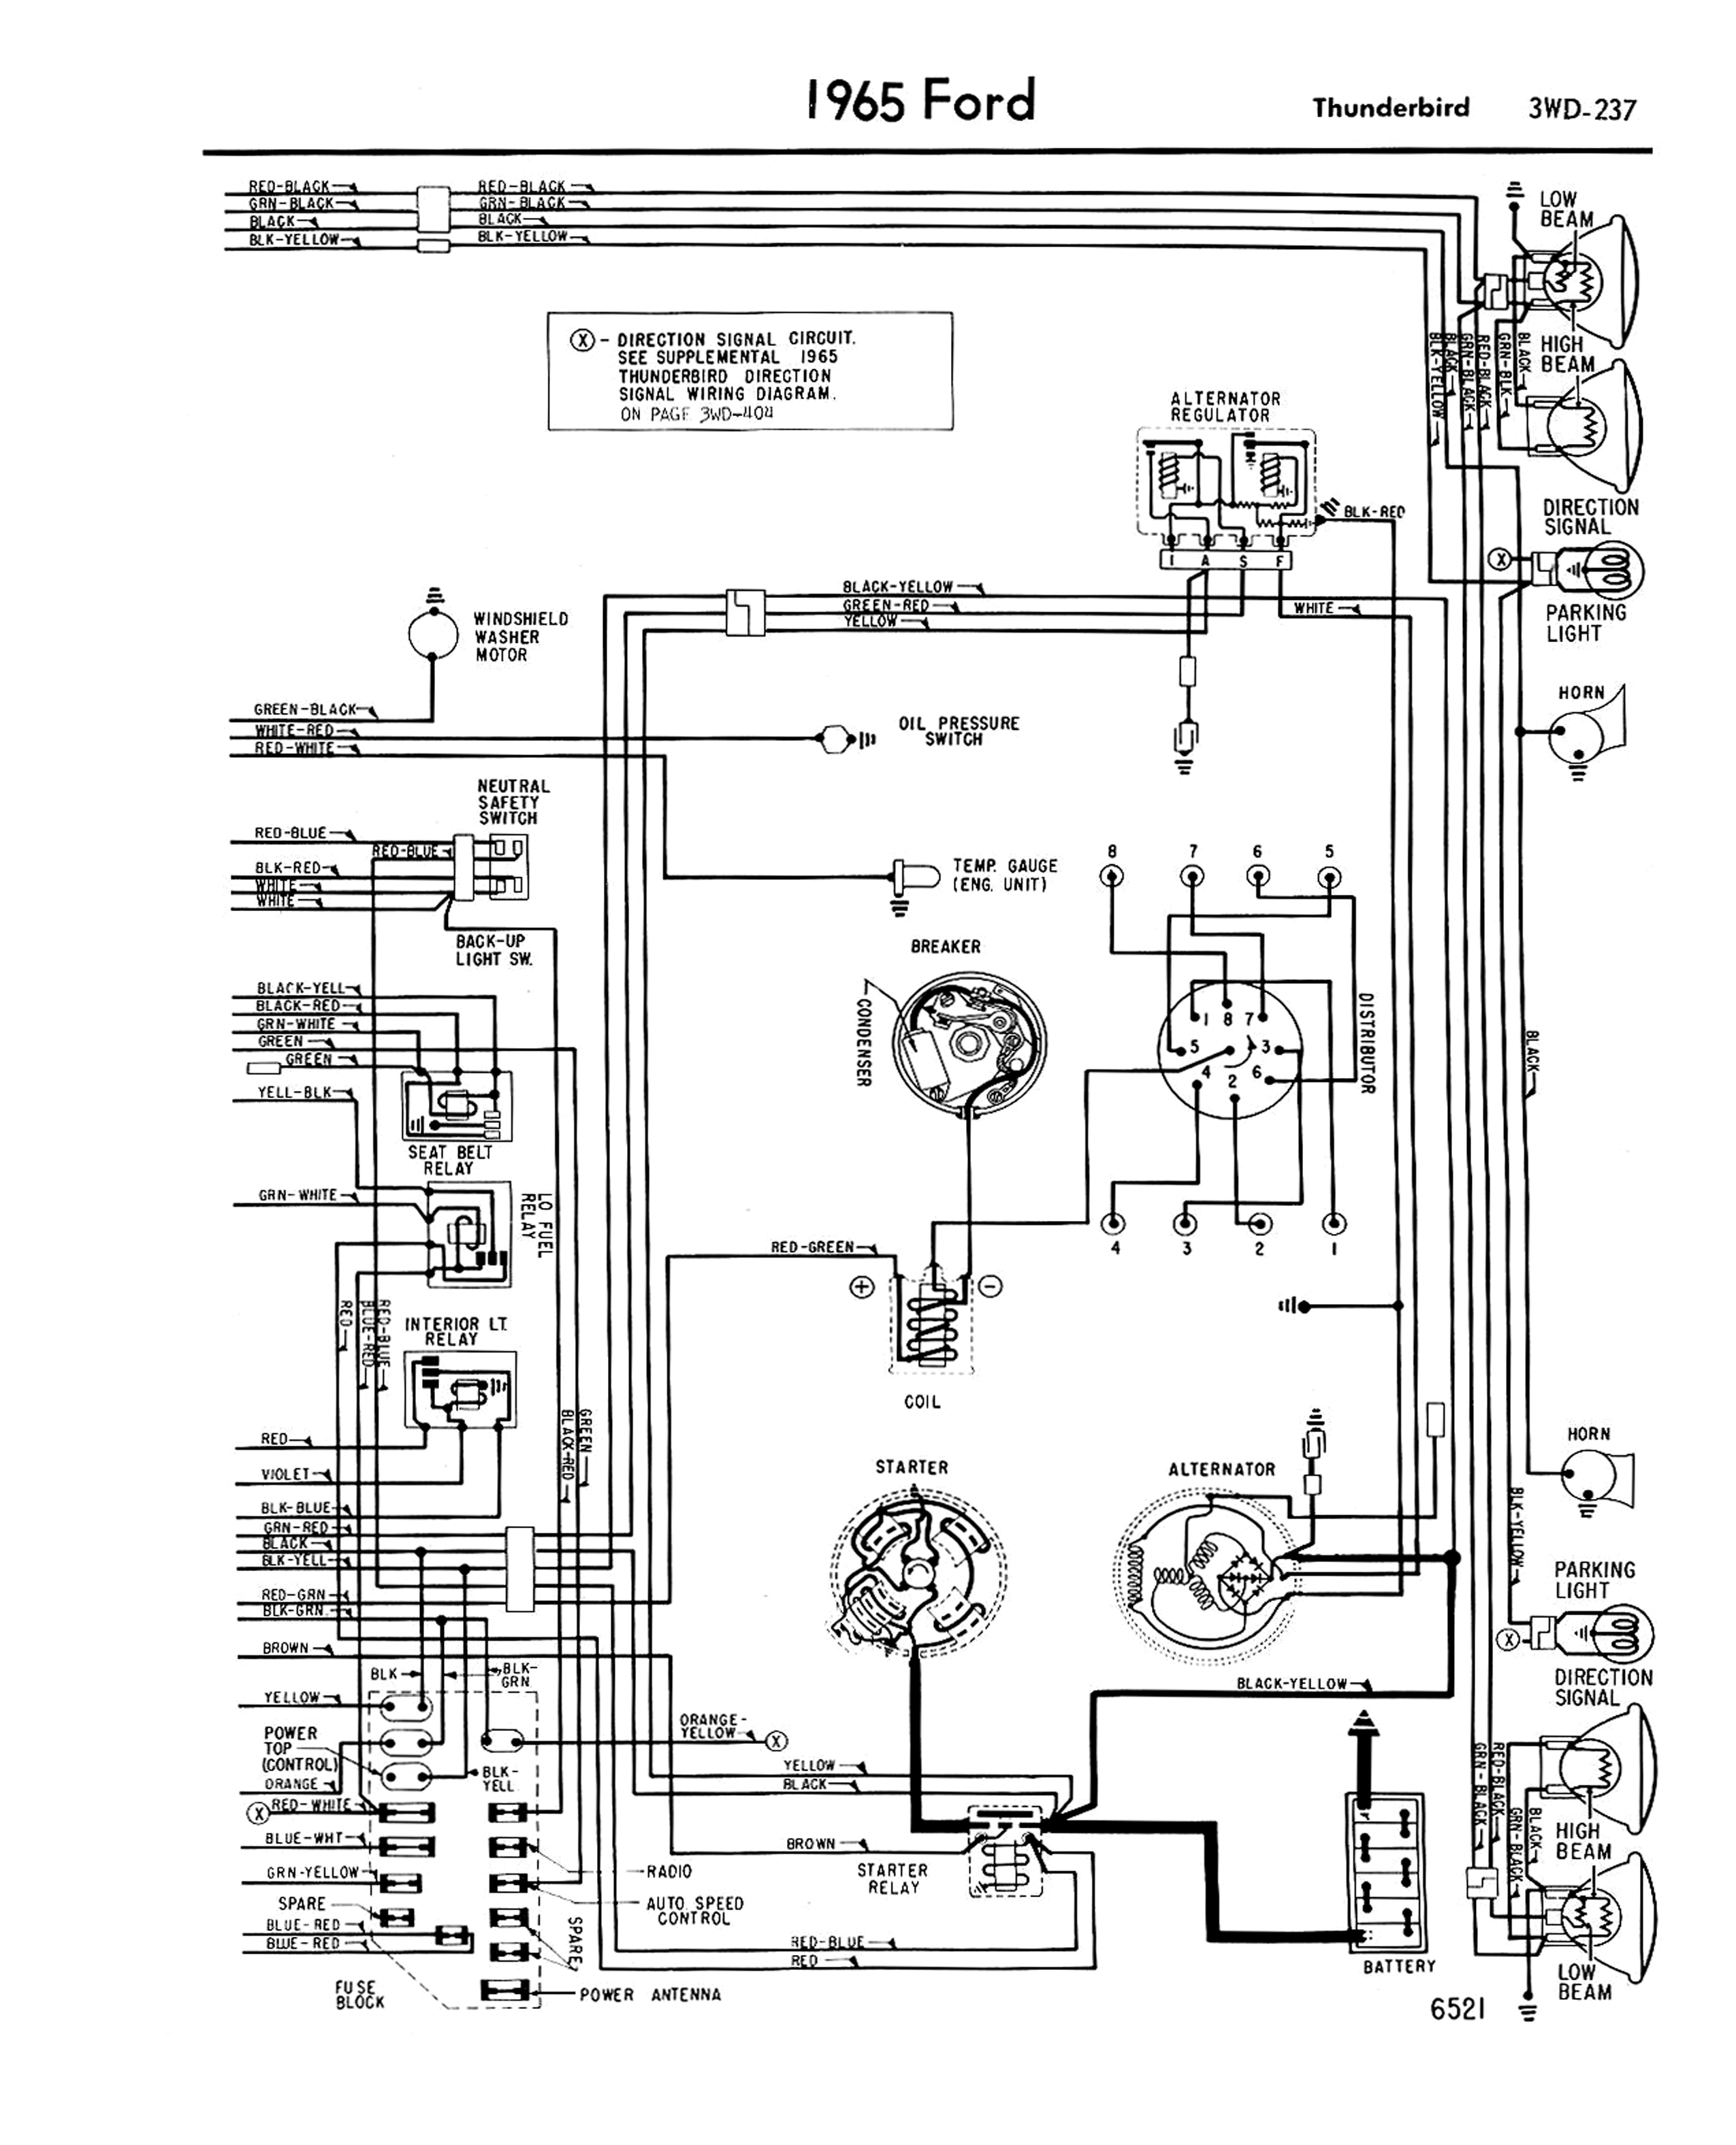 65TbirdWiringDiagramRight 1958 68 ford electrical schematics 1971 ford f100 ignition switch wiring diagram at gsmx.co